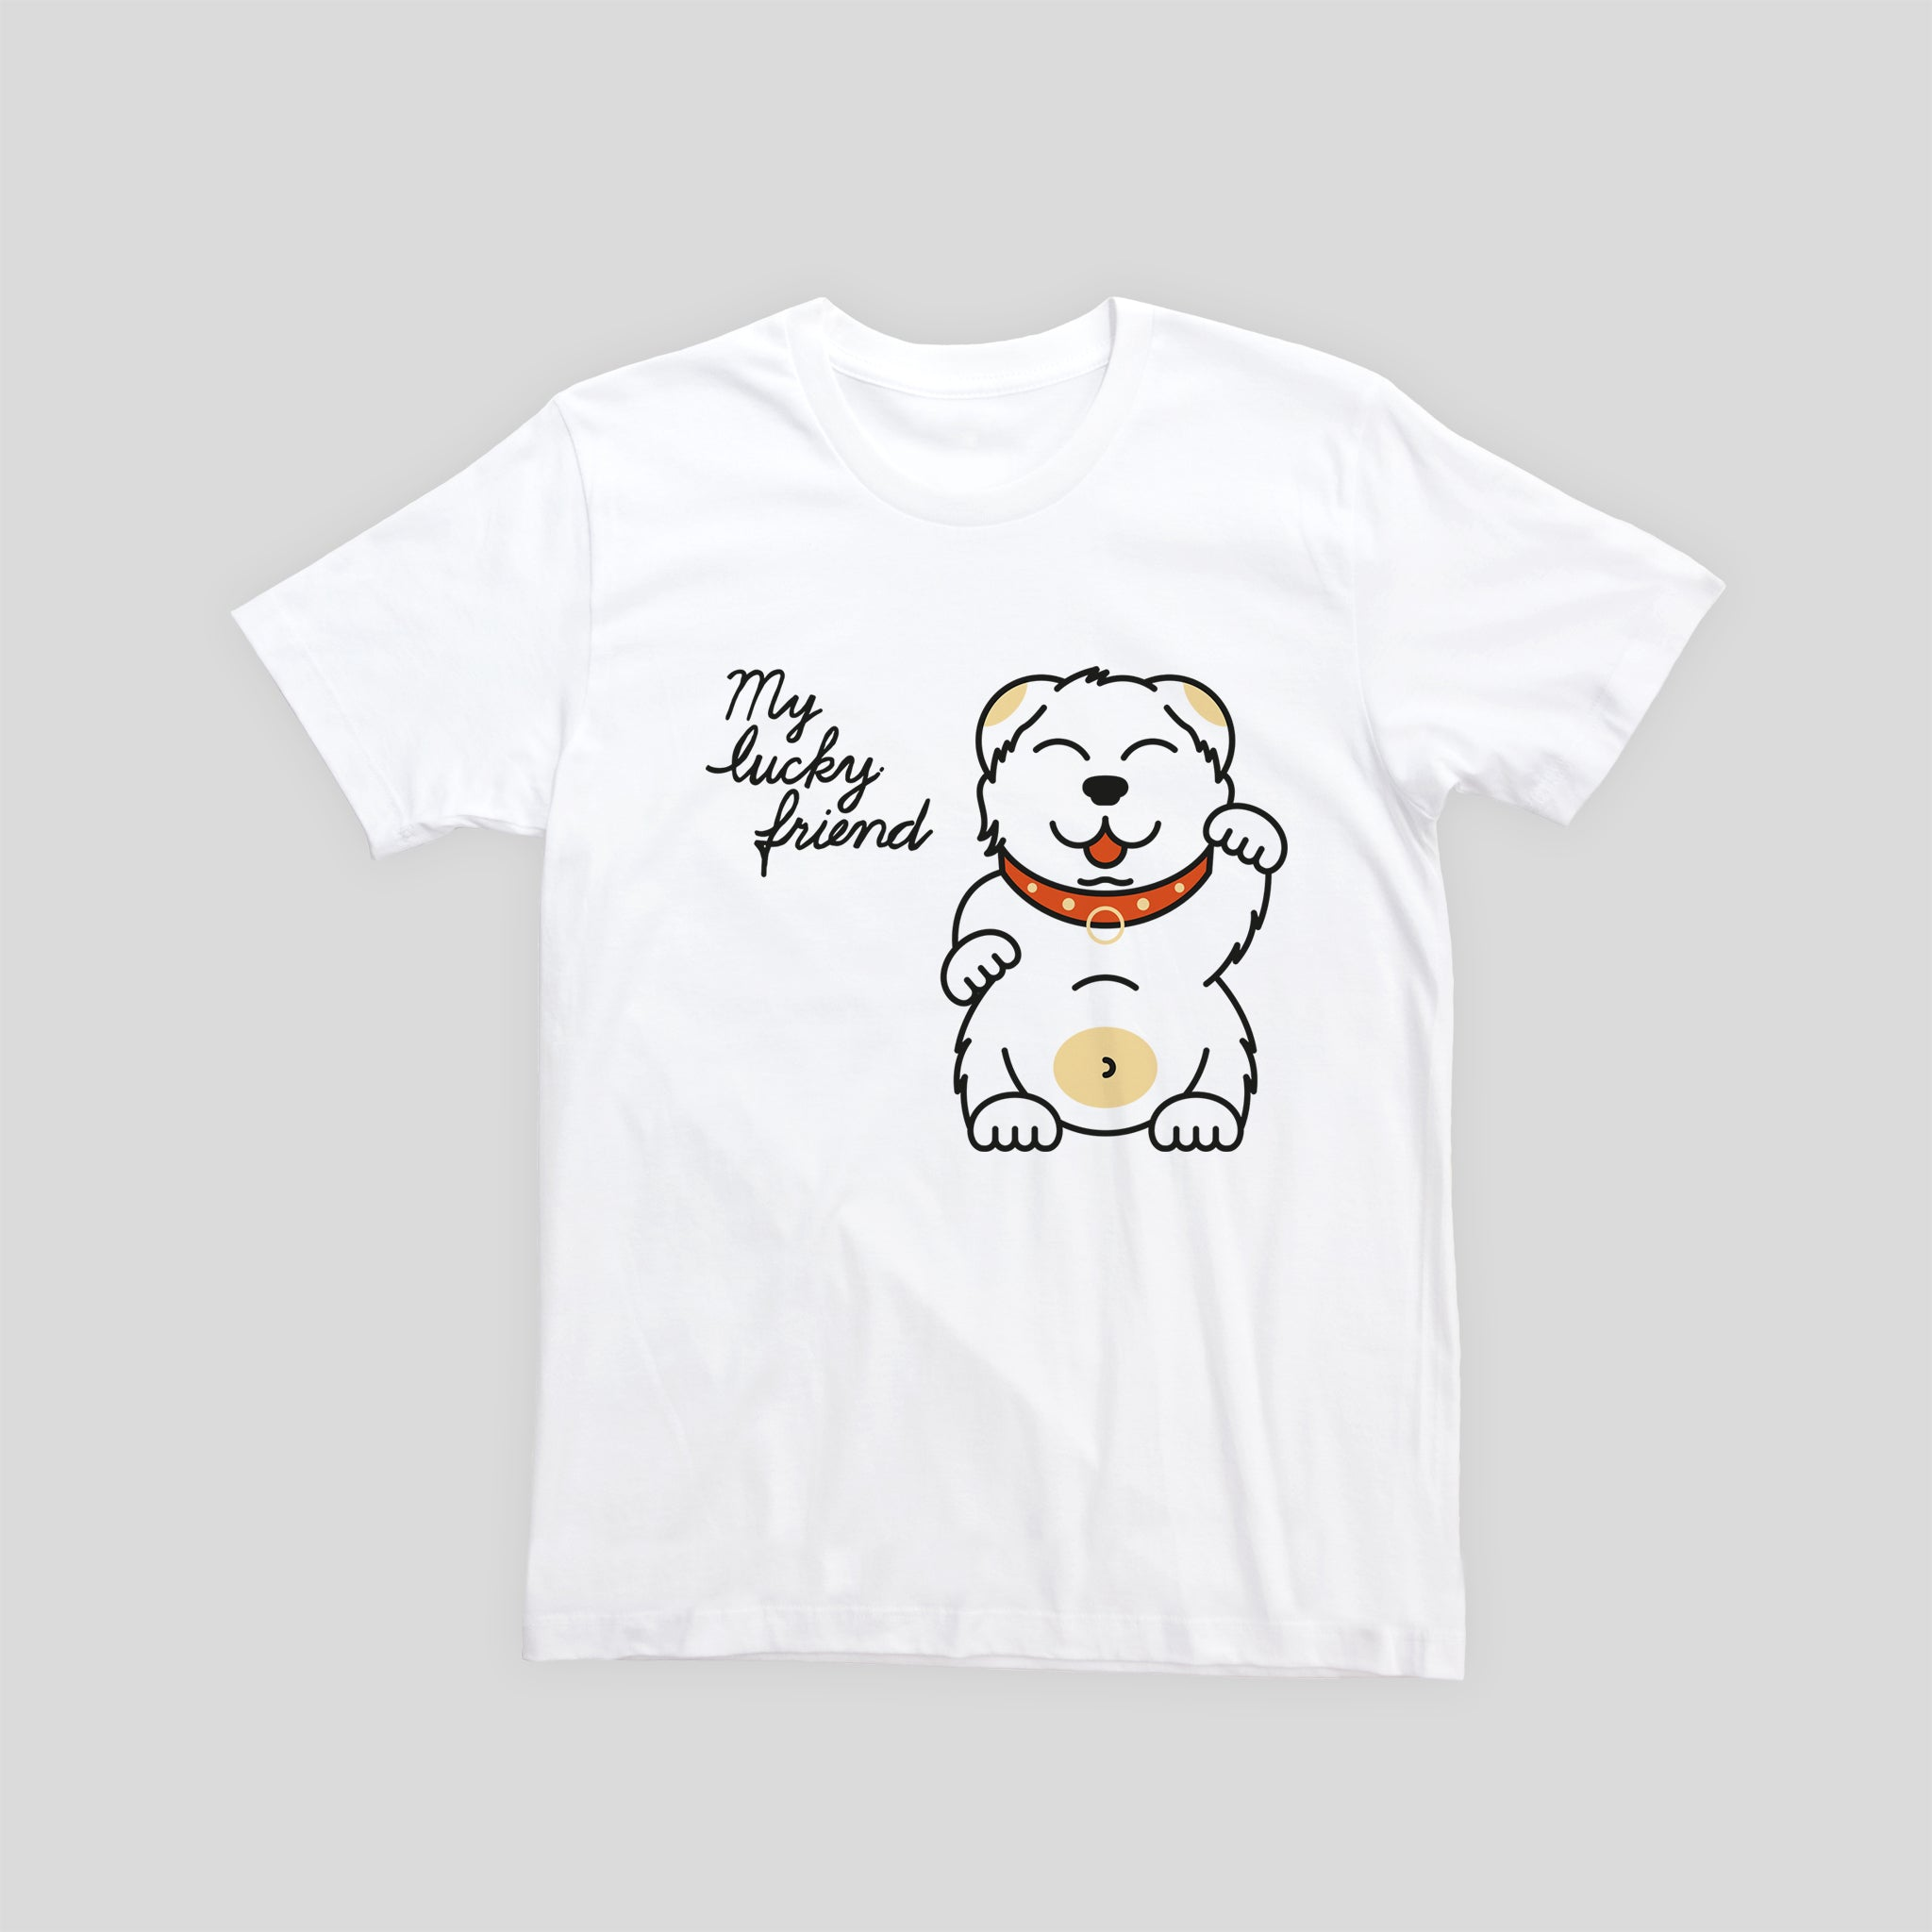 My Lucky Friend - Kids T-shirt